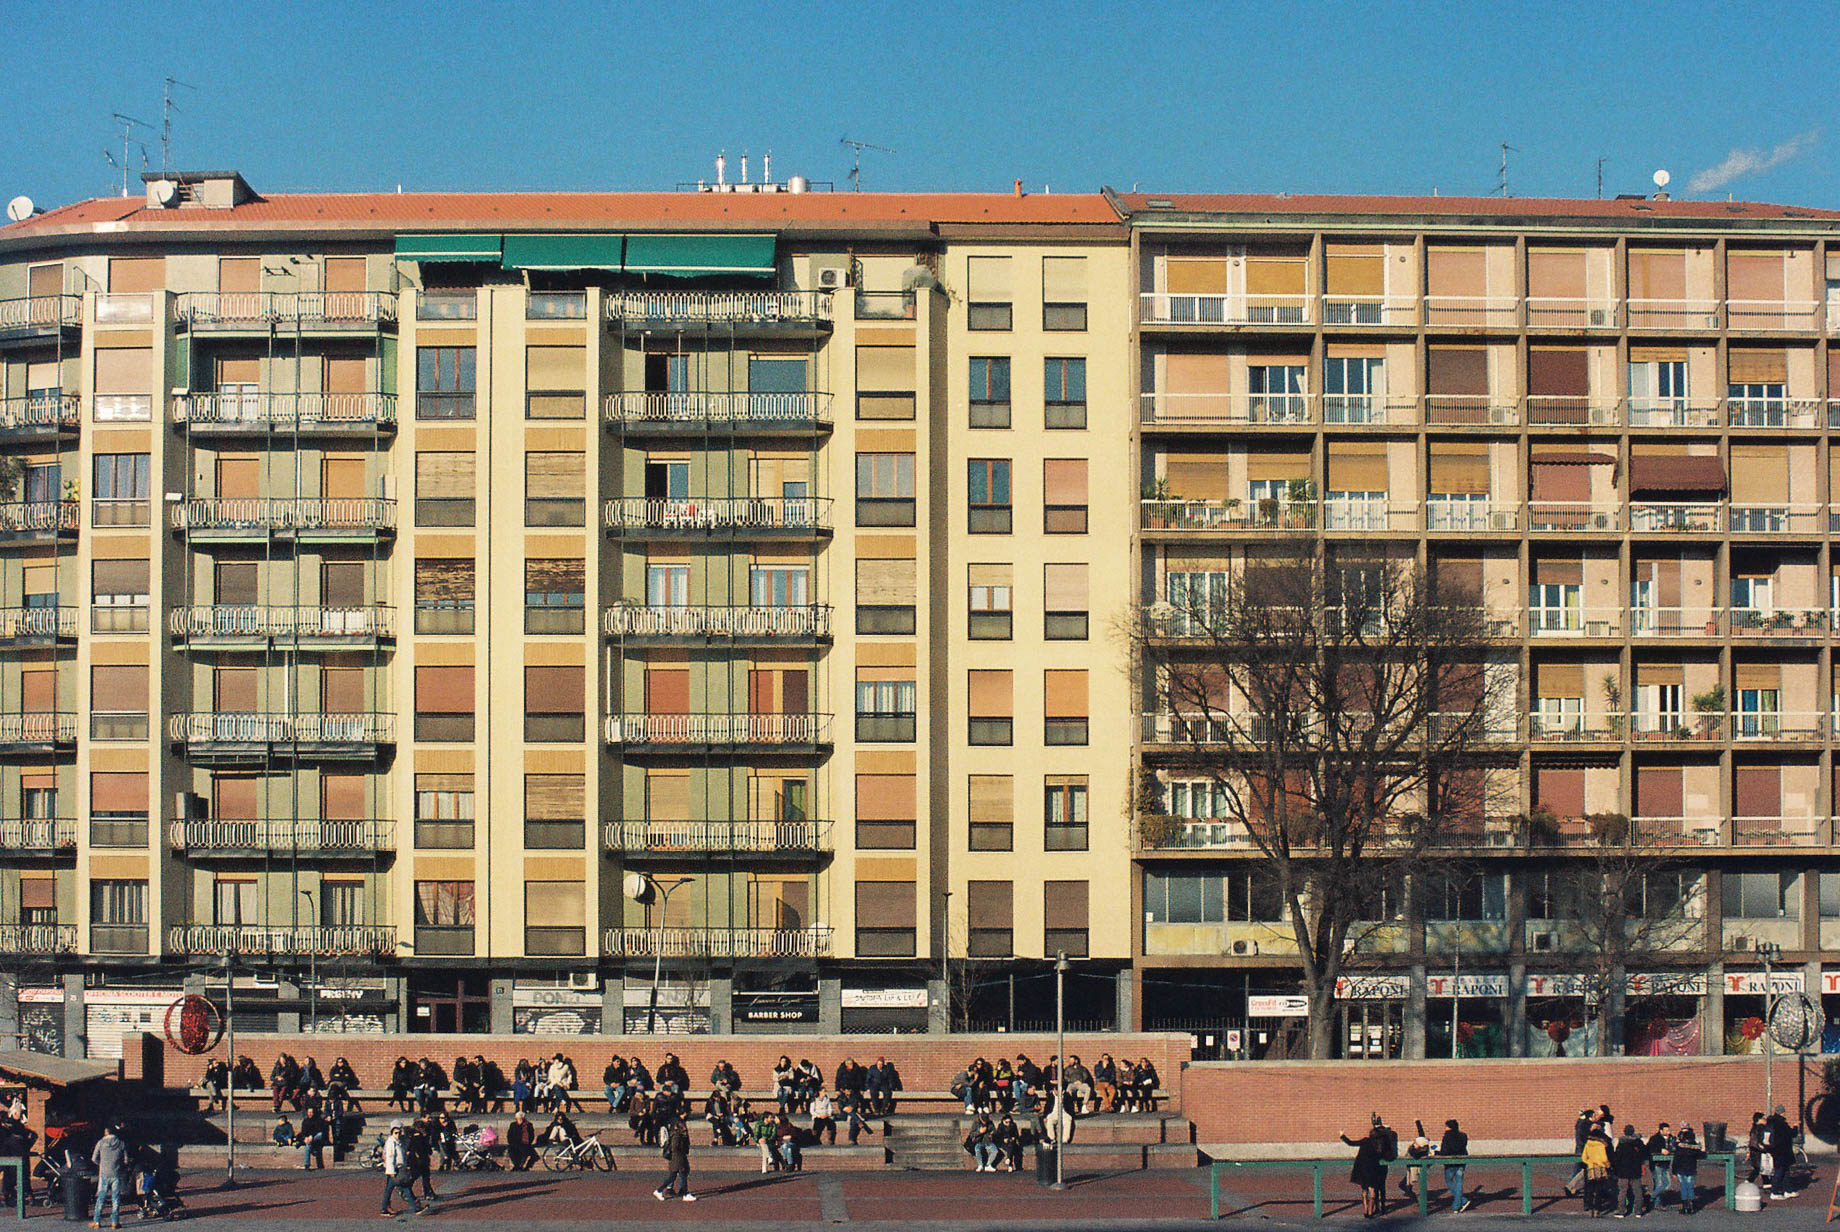 Darsena Italian Winter Travels Lifestyle Travel Photographer 2